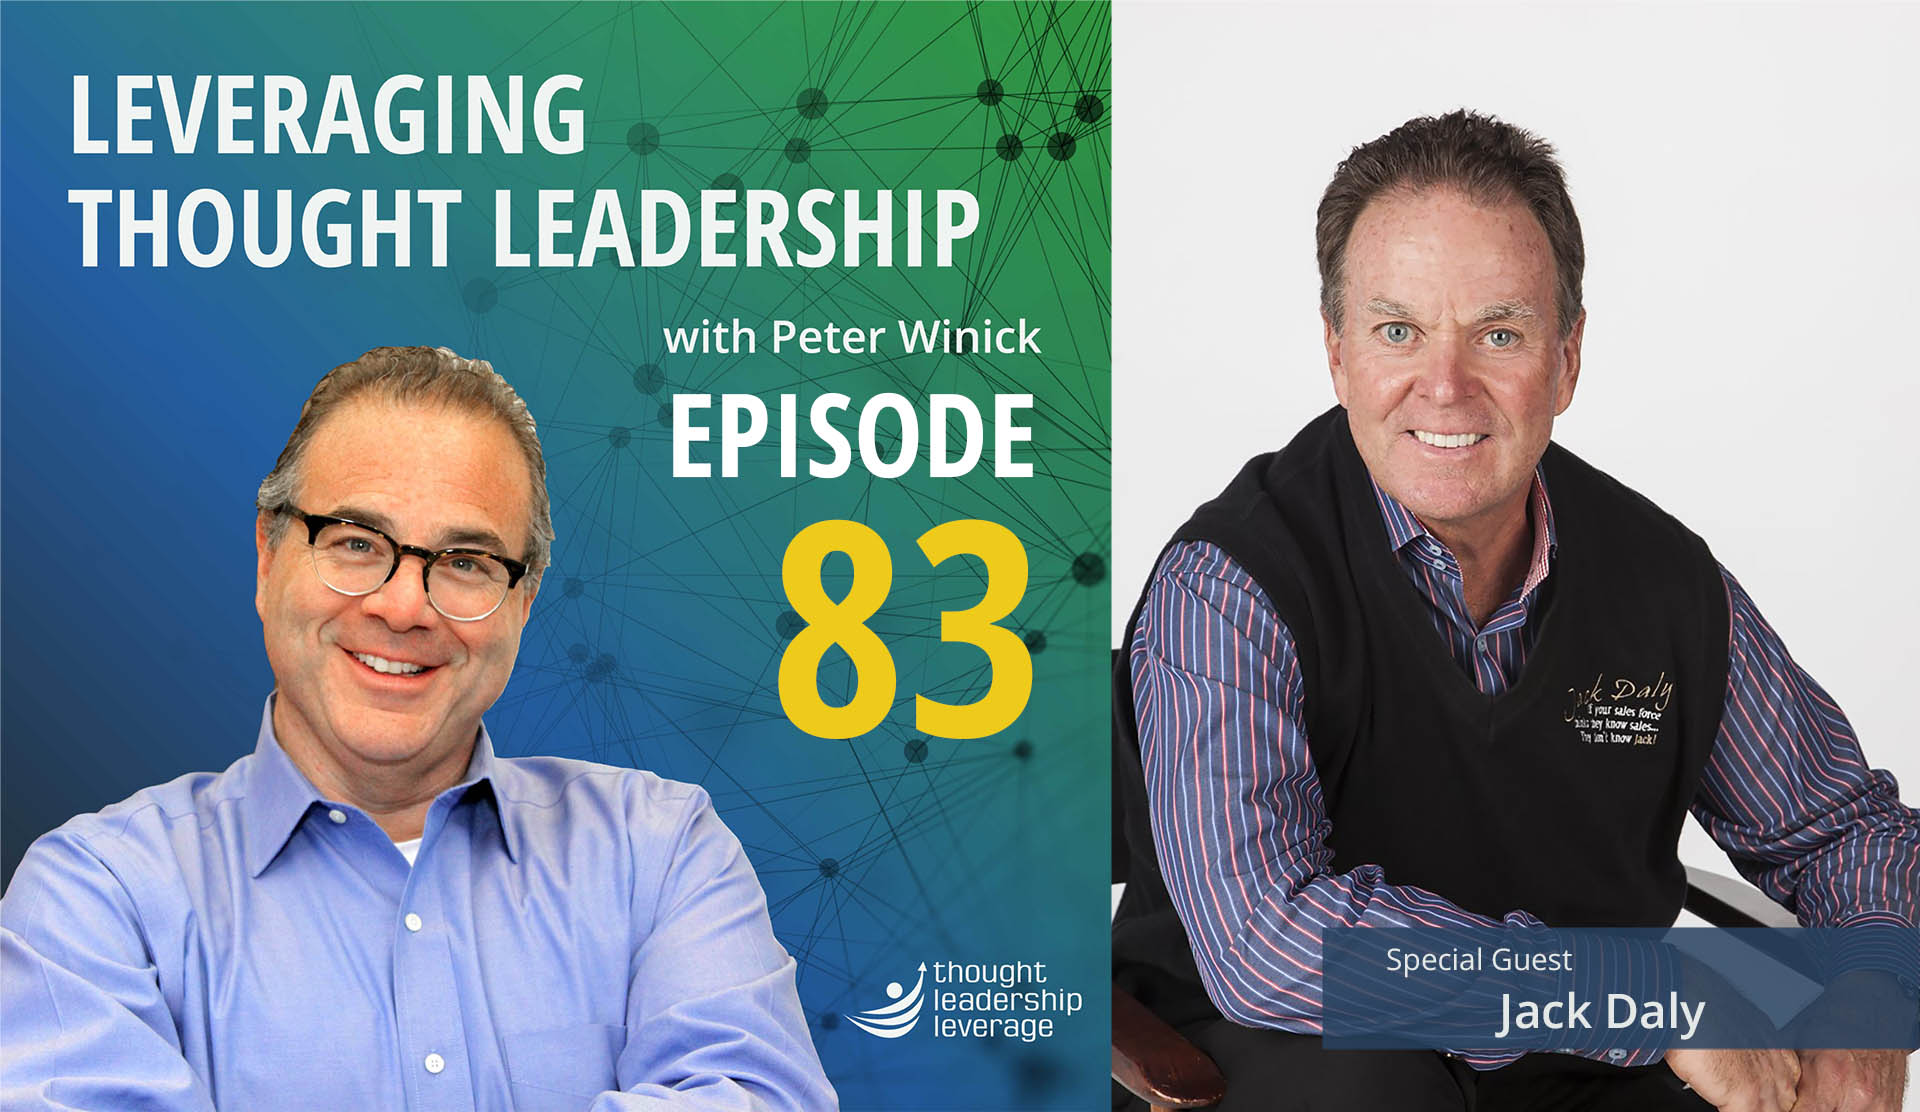 Peter Winick speaks with Jack Daly on Episode 83 of the Leveraging Thought Leadership Podcast